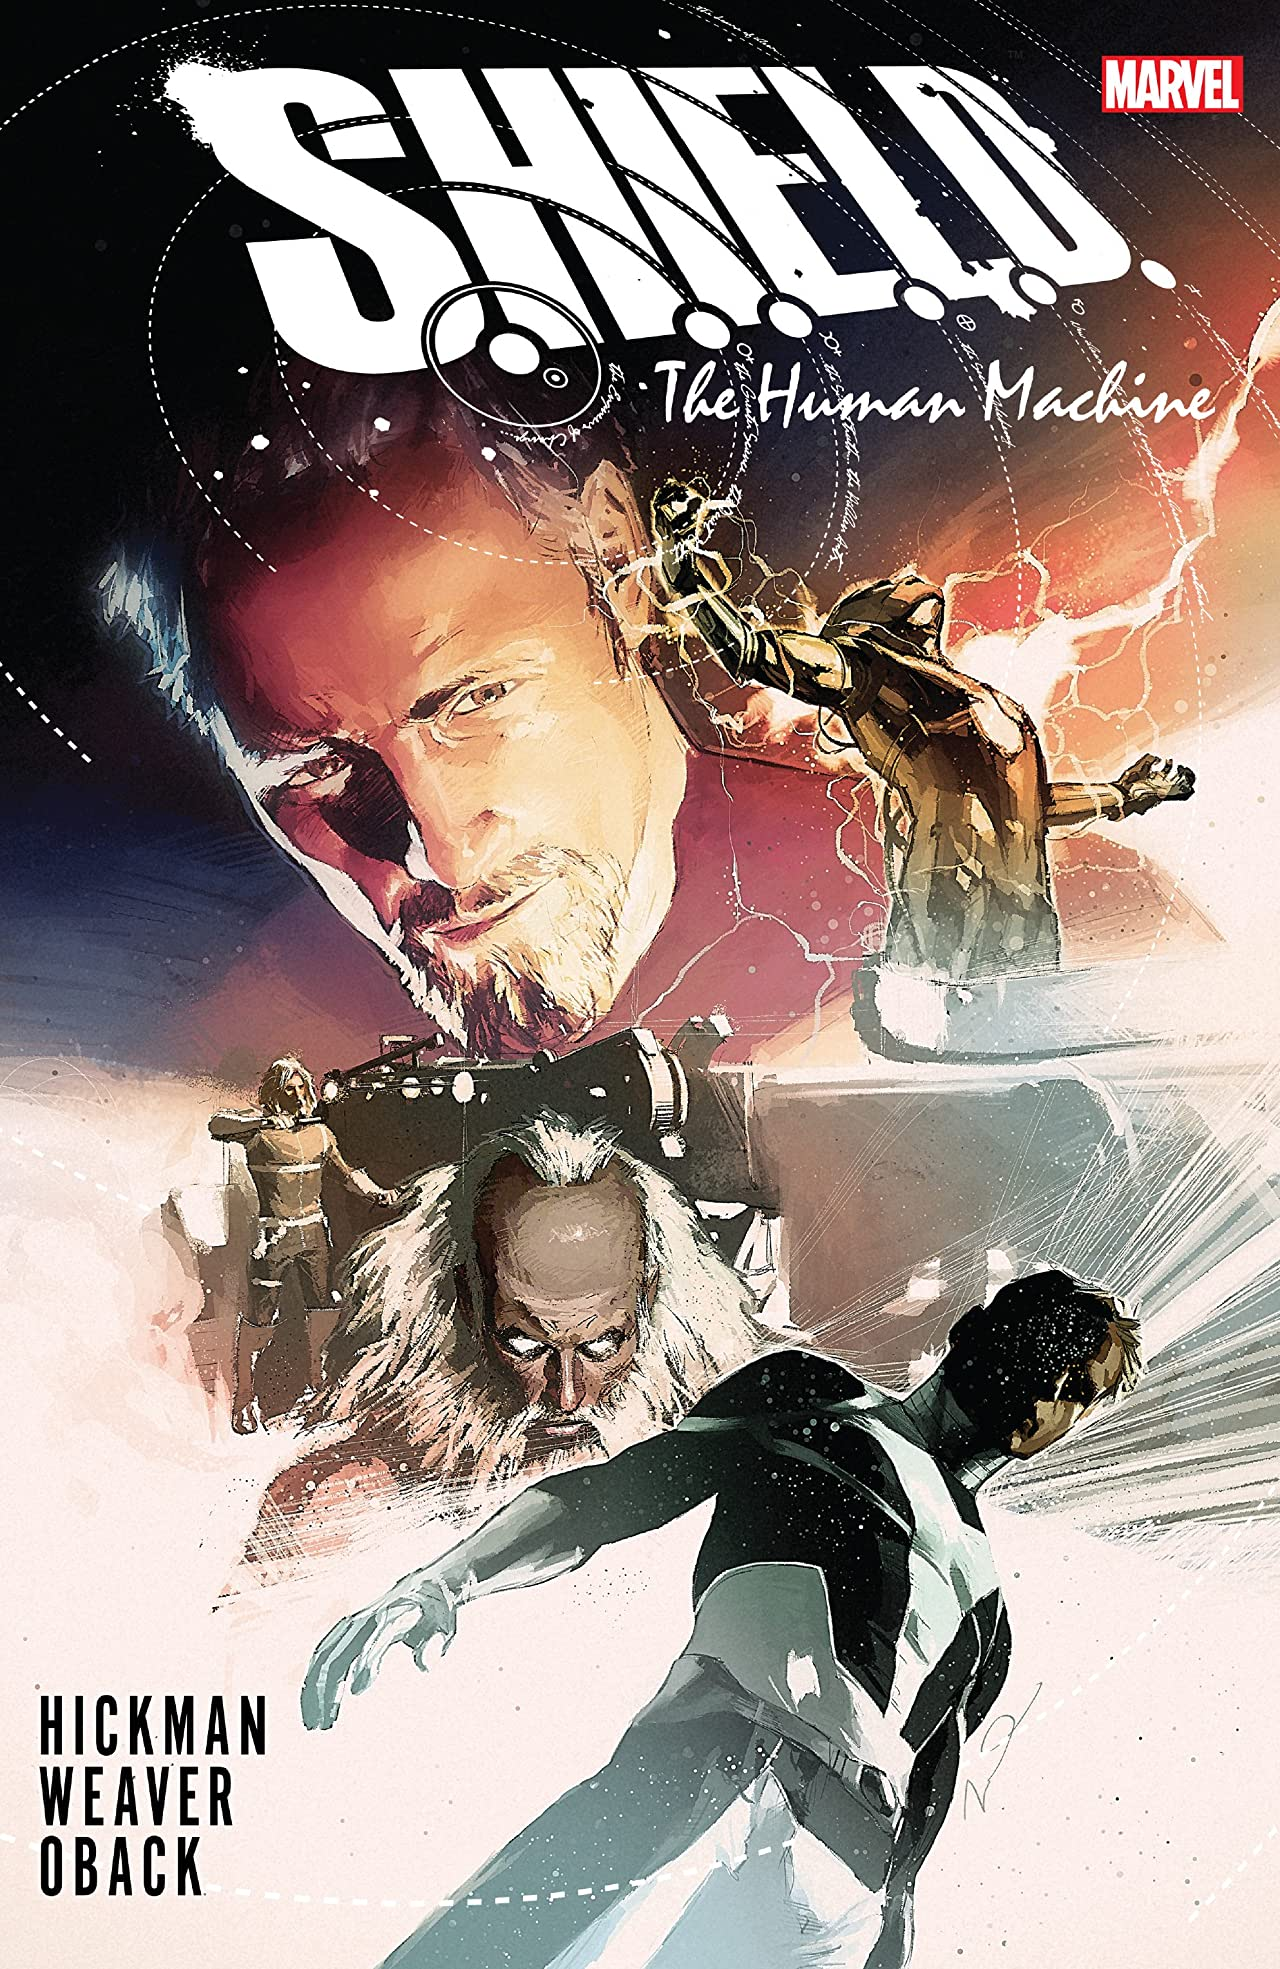 S.H.I.E.L.D. by Hickman & Weaver: The Human Machine